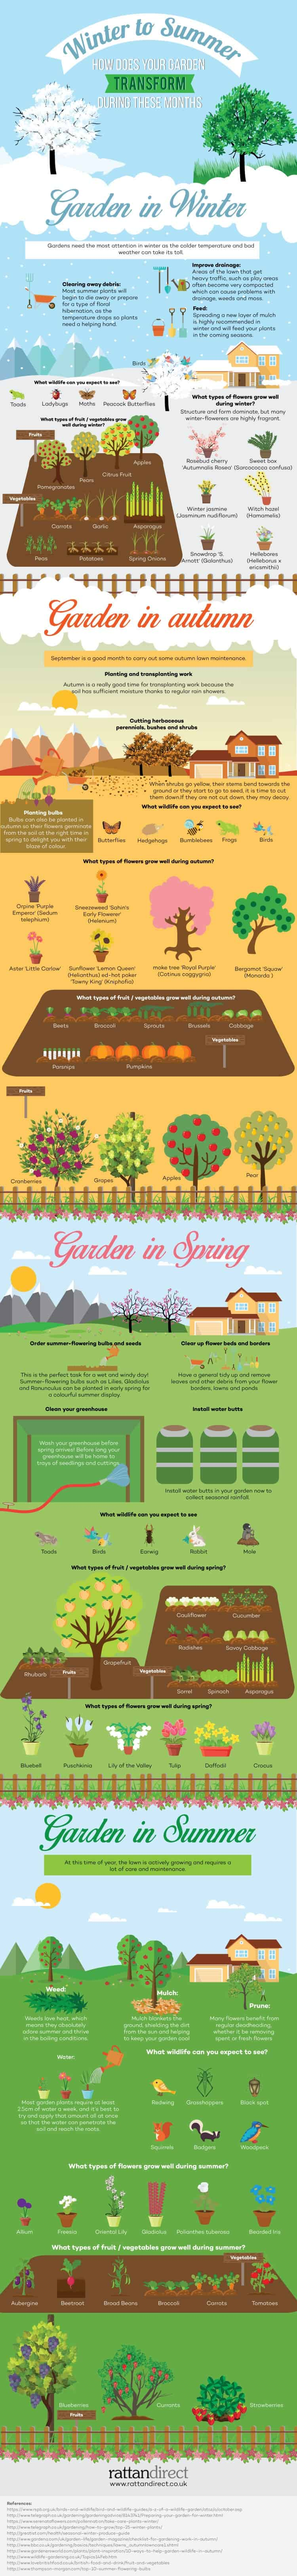 Winter-to-Summer---How-Does-Your-Garden-Transform-During-These-Months (1)